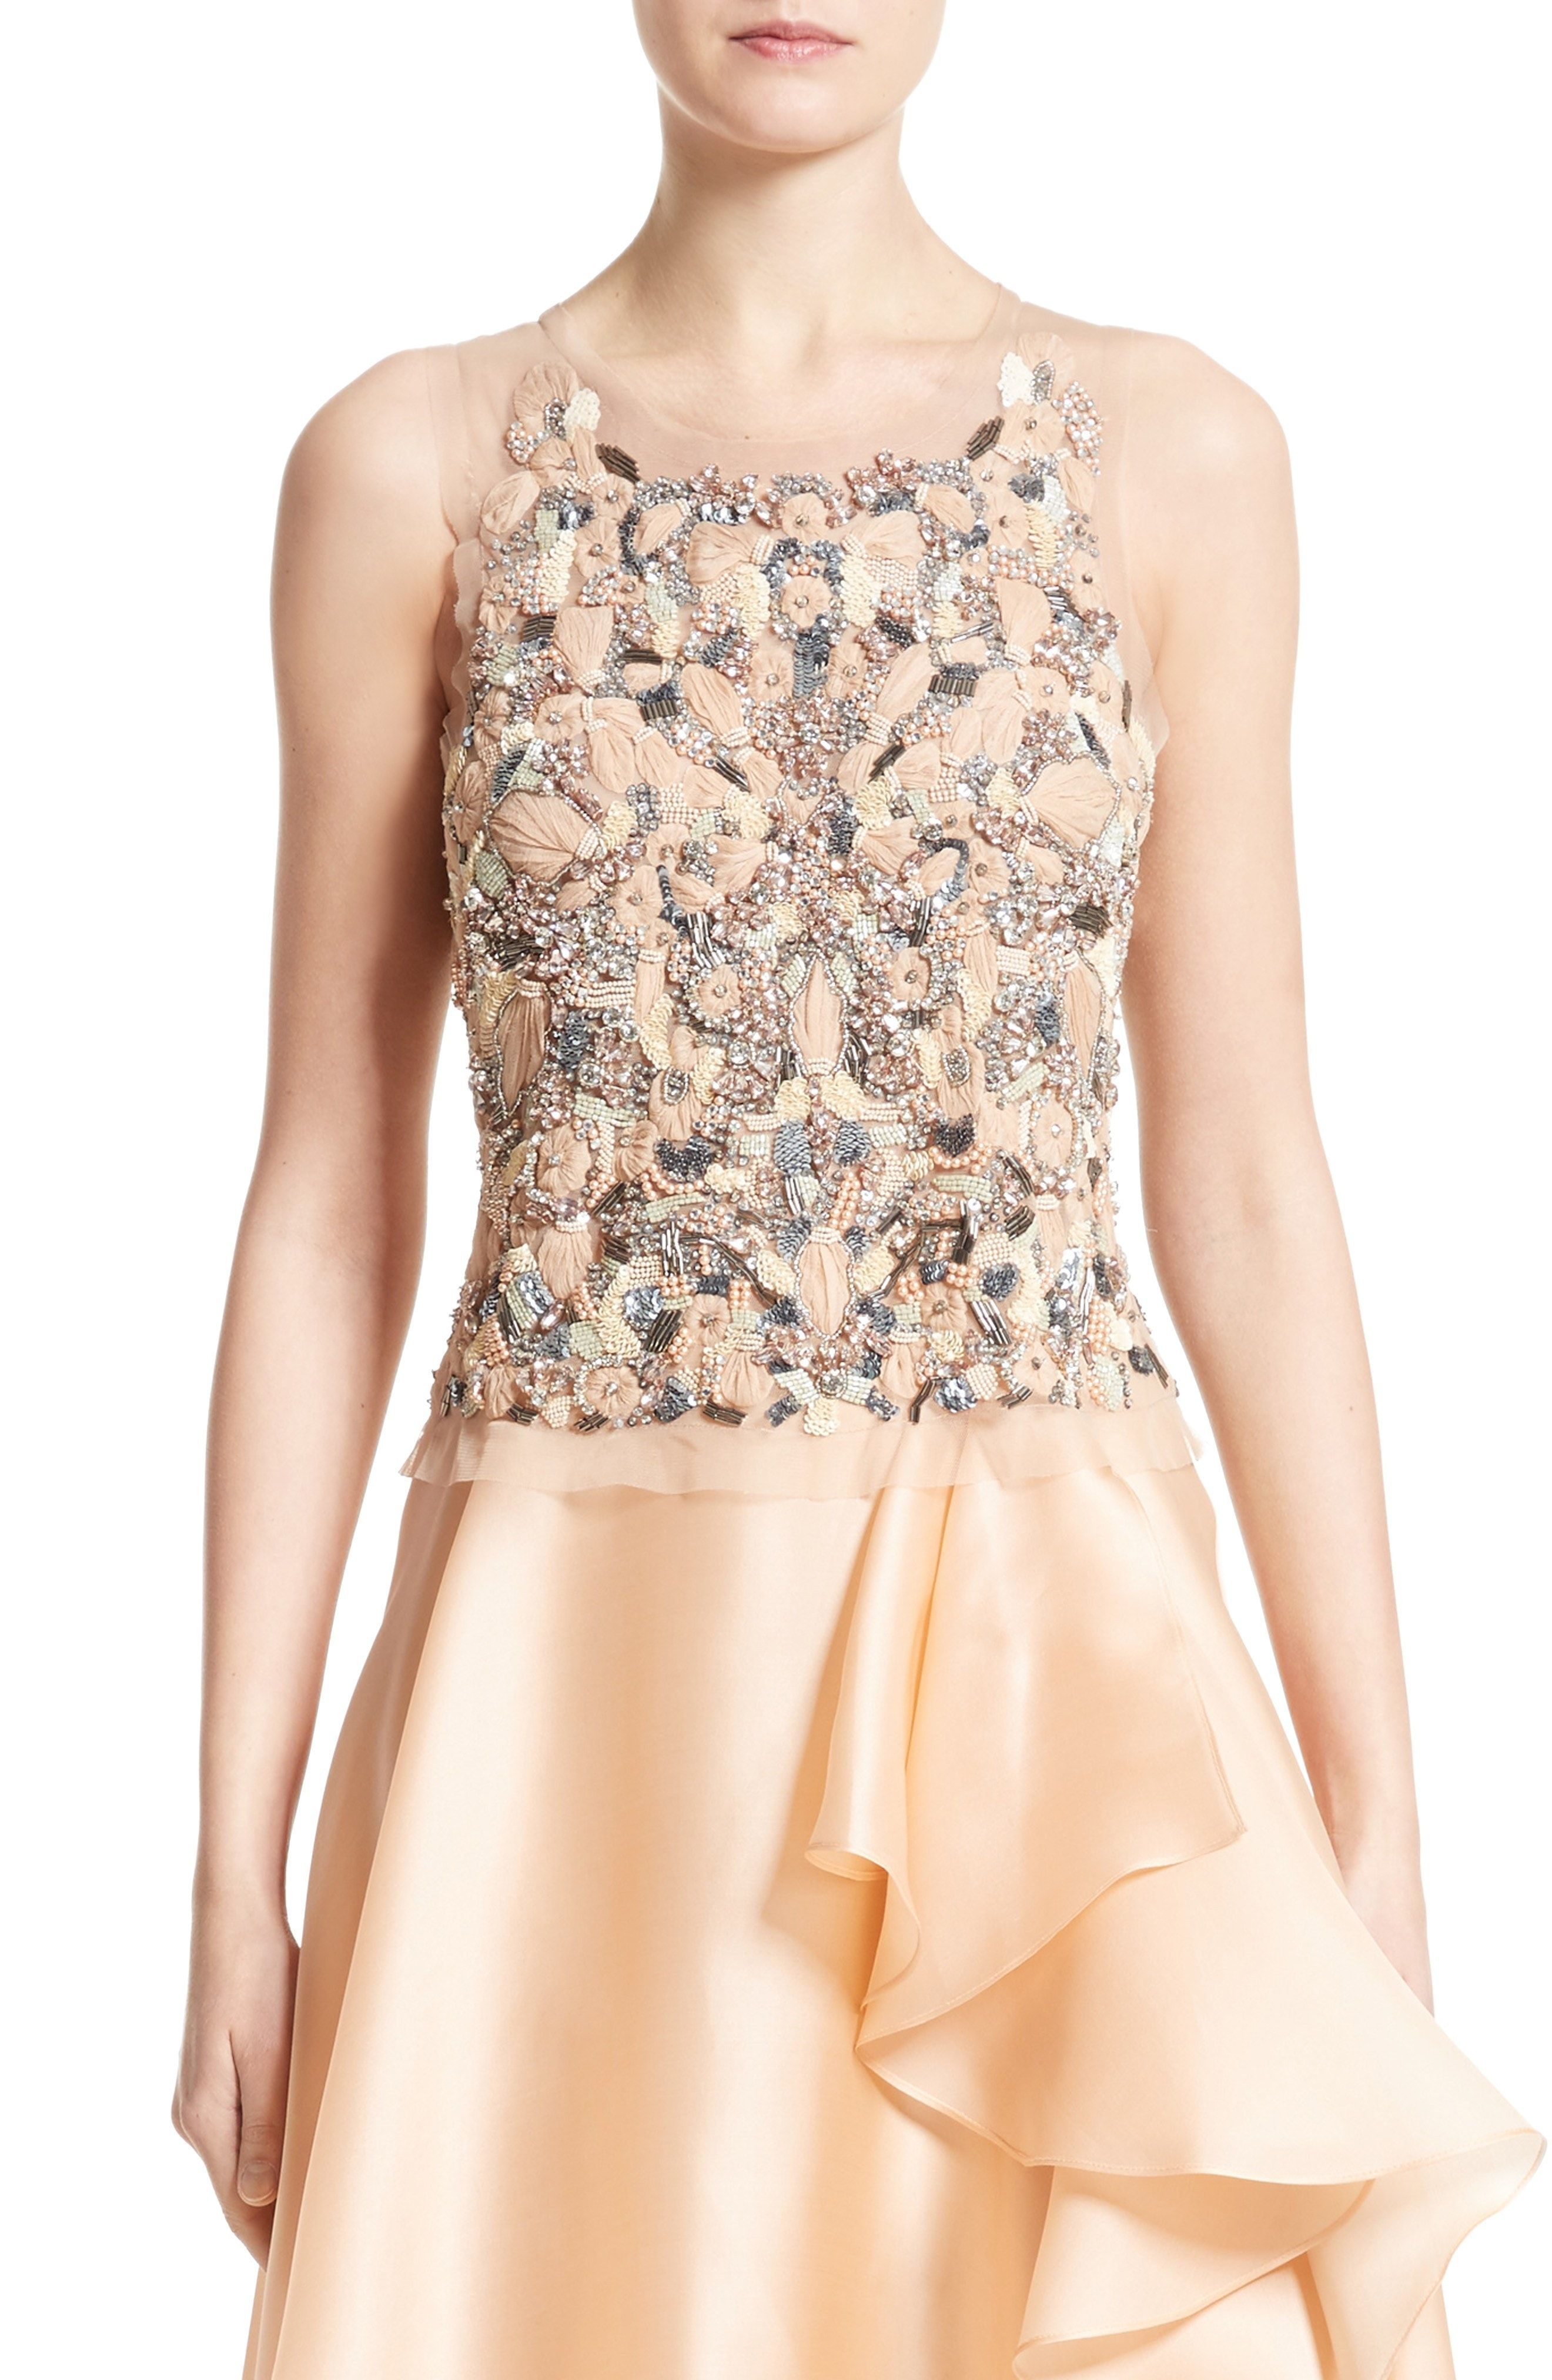 New Badgley Mischka Beaded Top WHITE fashion online. [$1495] new offer from topshoppingonline<<